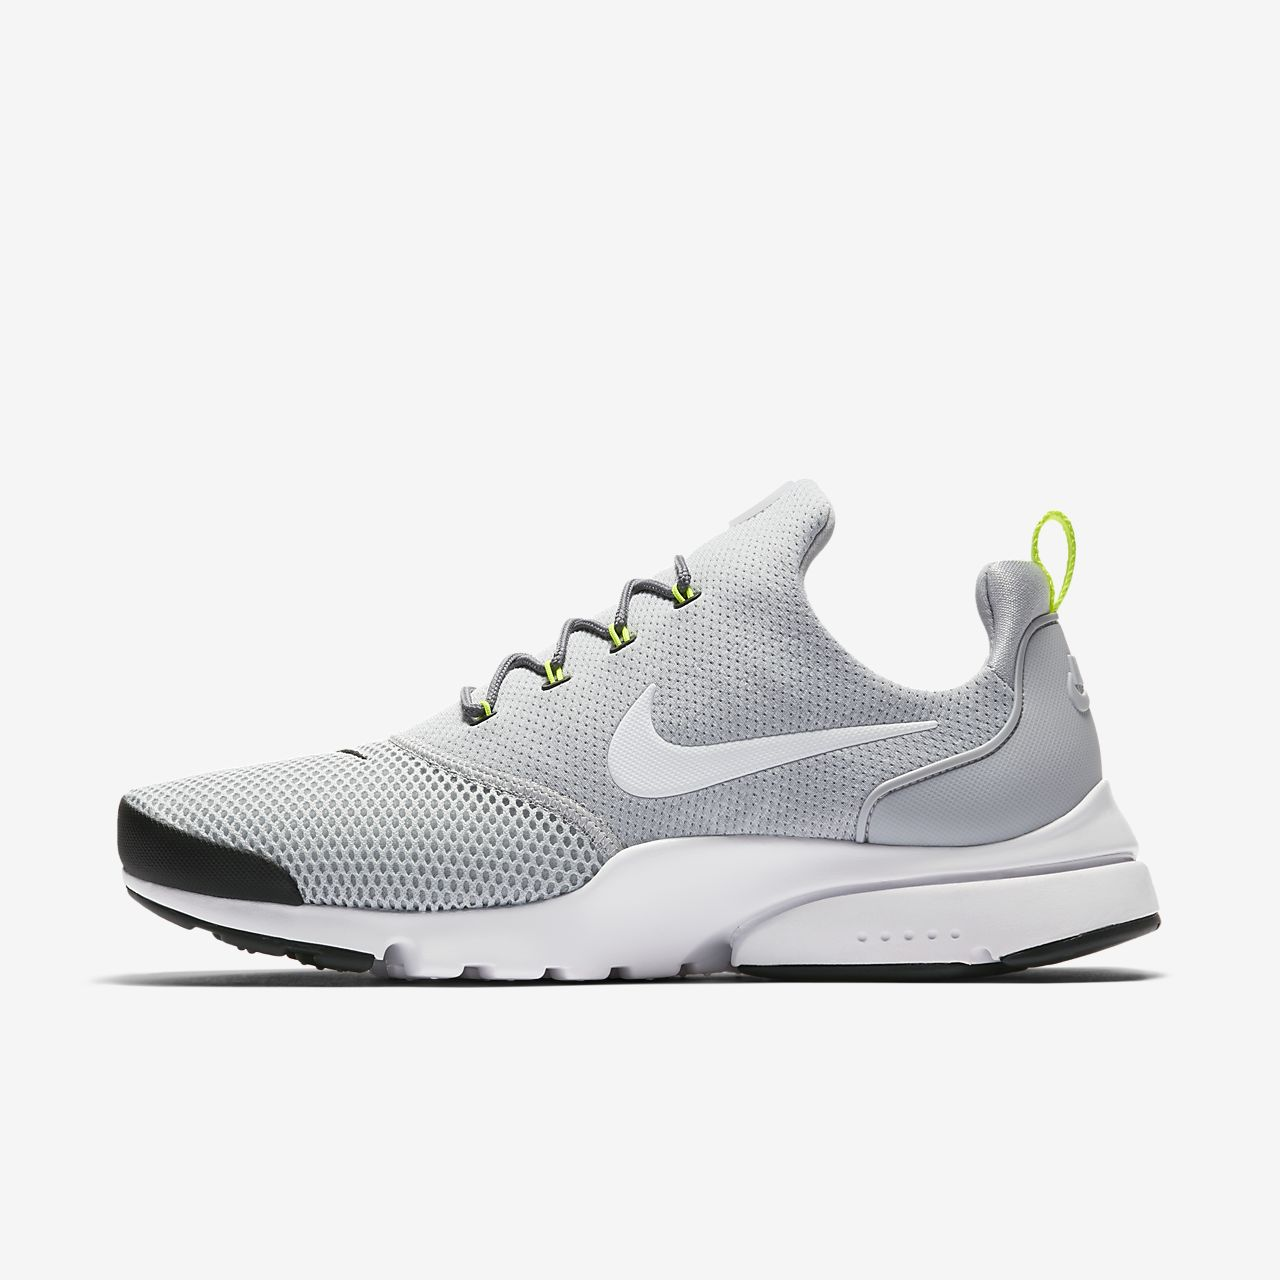 low priced 0735a 40a48 chaussure nike presto fly